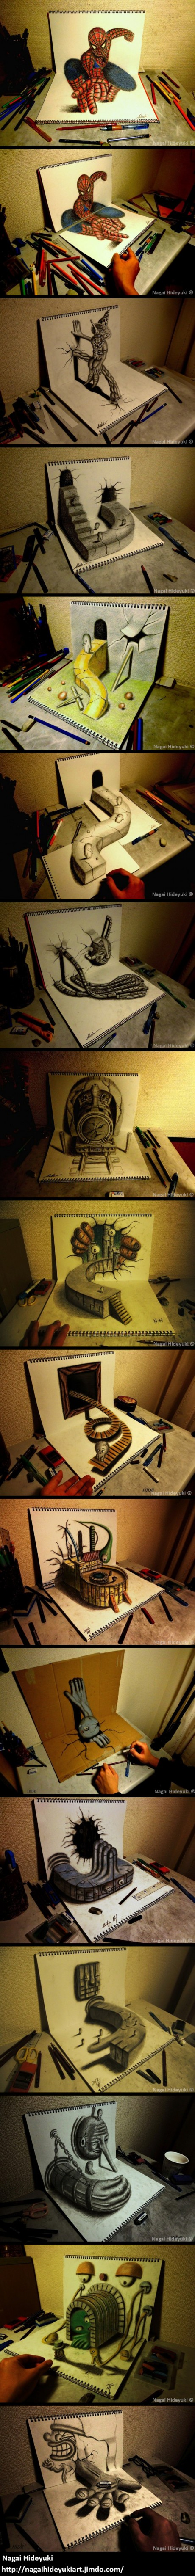 Awesome 3D art- excuse me as I go burn my art due to my incompetency